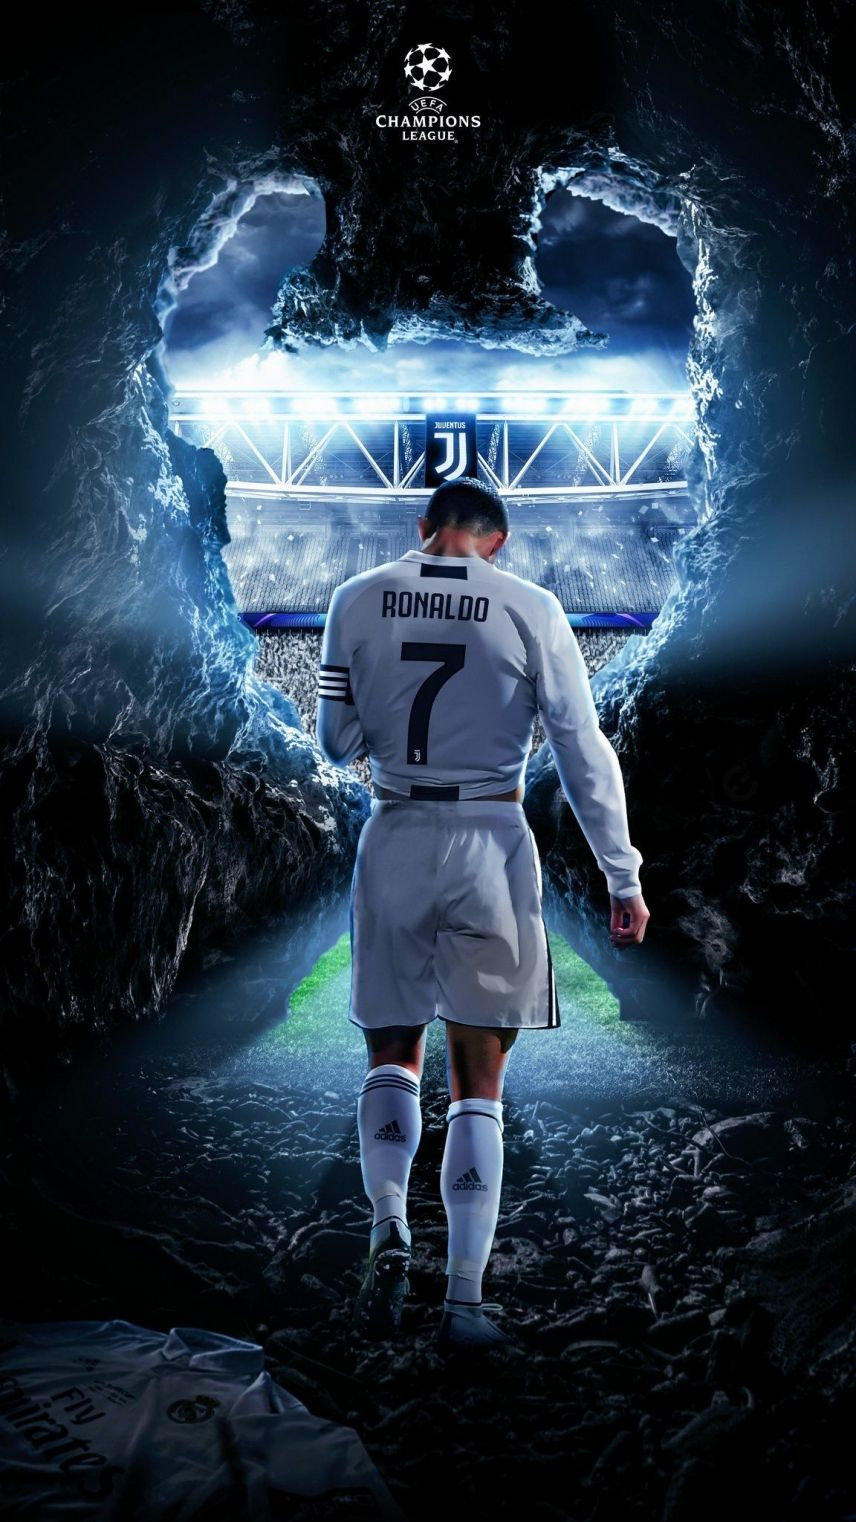 Cristiano Ronaldo Cool Wallpaper | Bol4gol